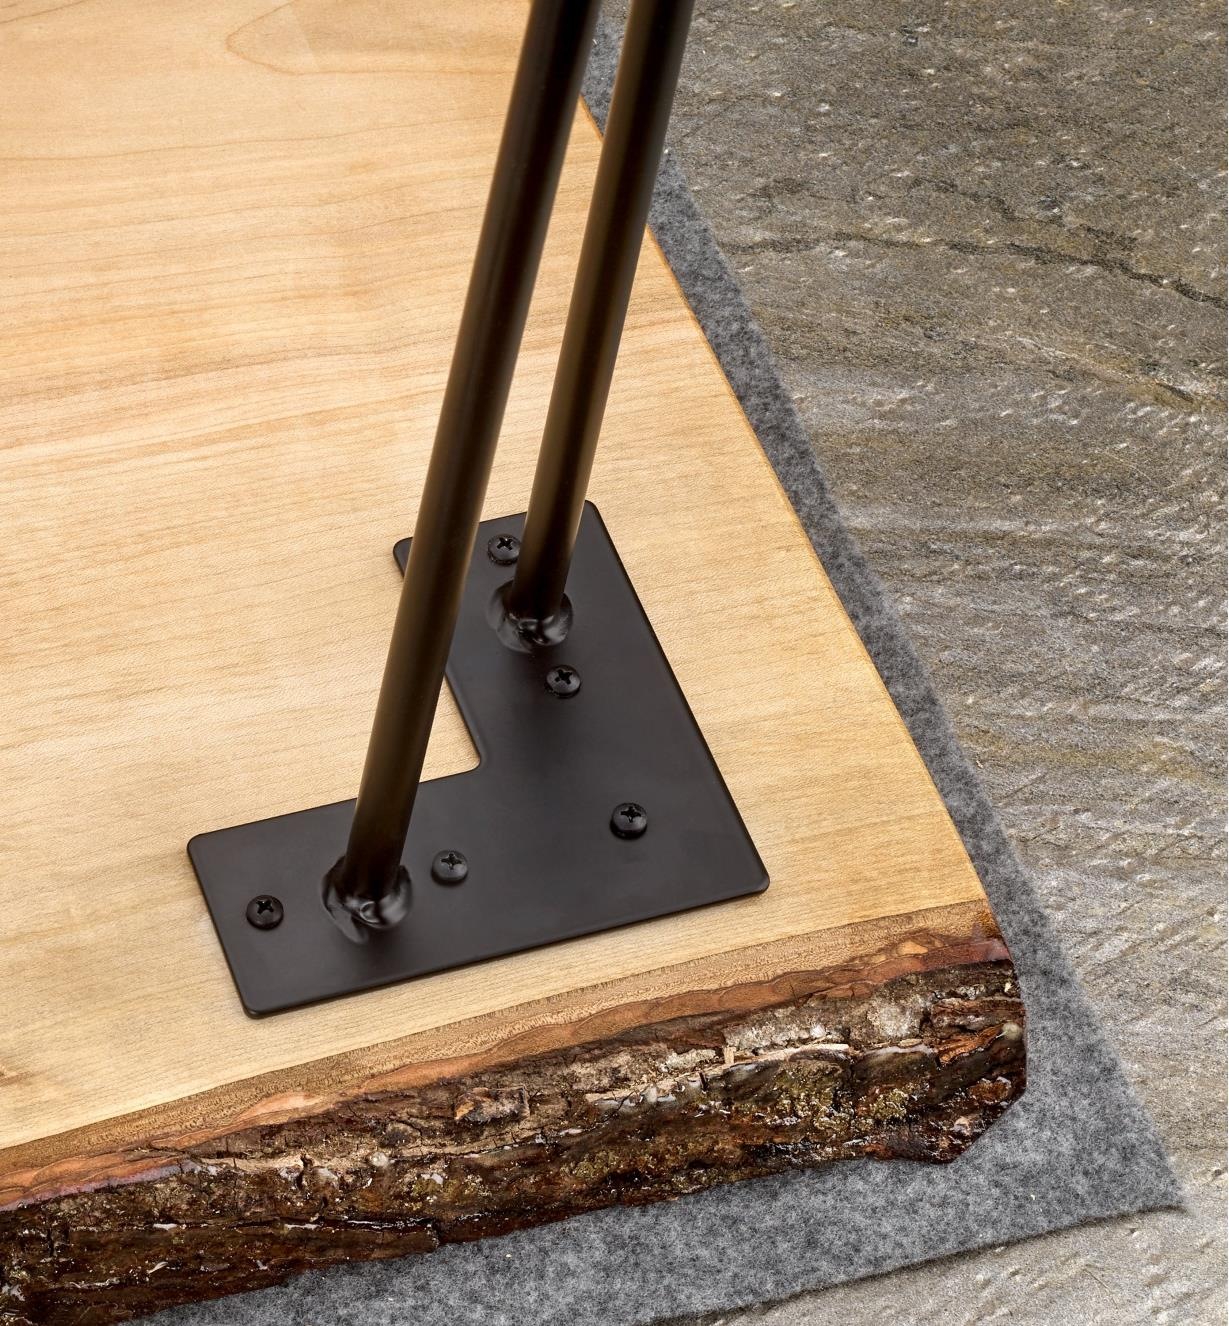 A 16-inch hairpin leg mounted on the corner of a live-edge coffee table